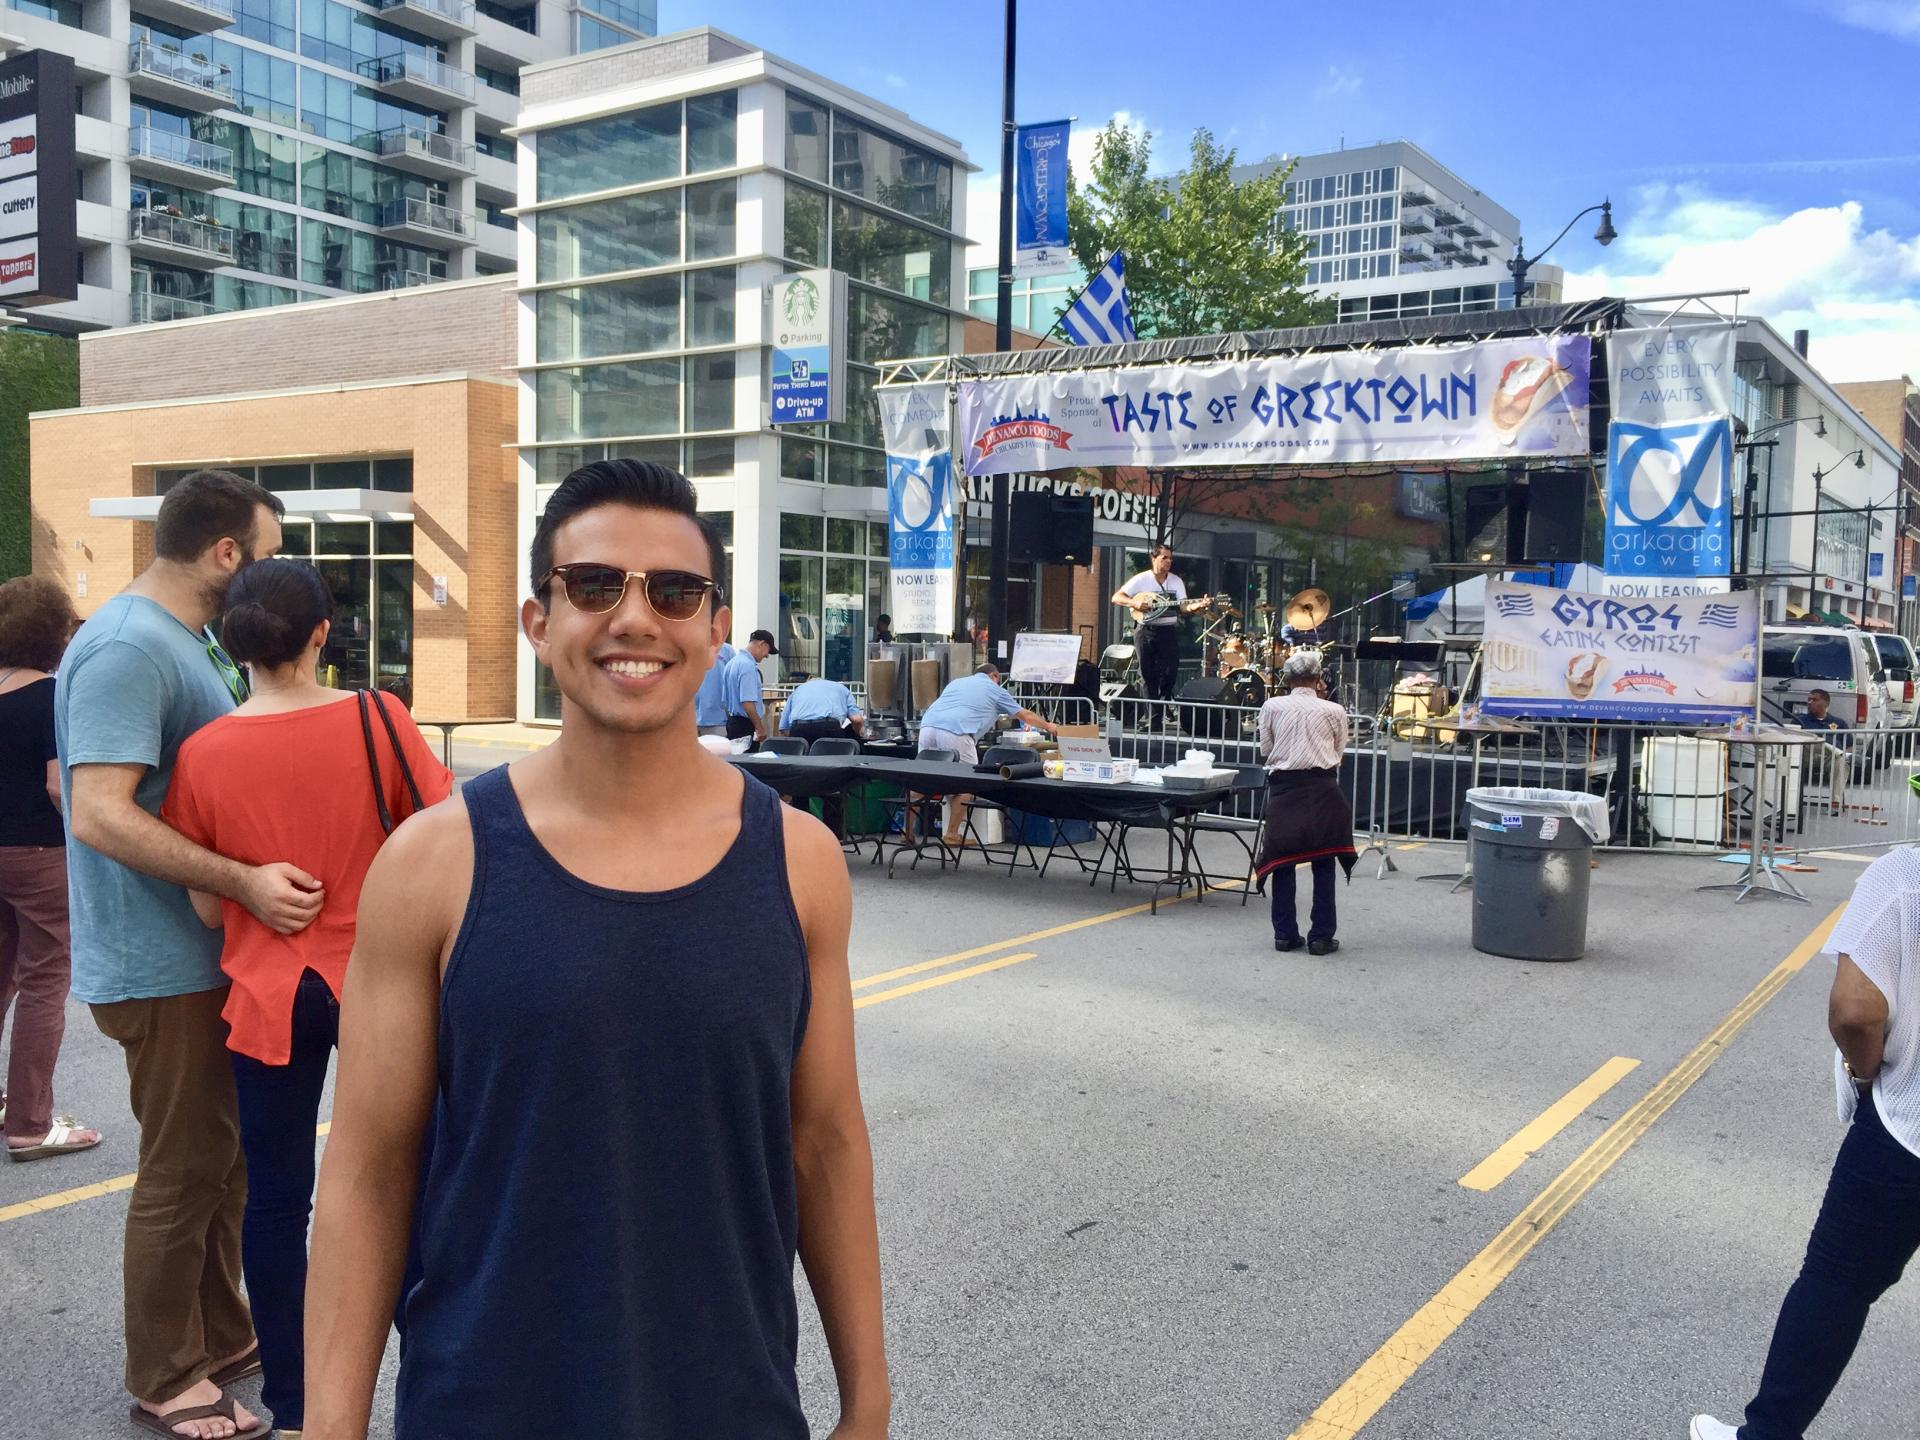 chicago street festivals